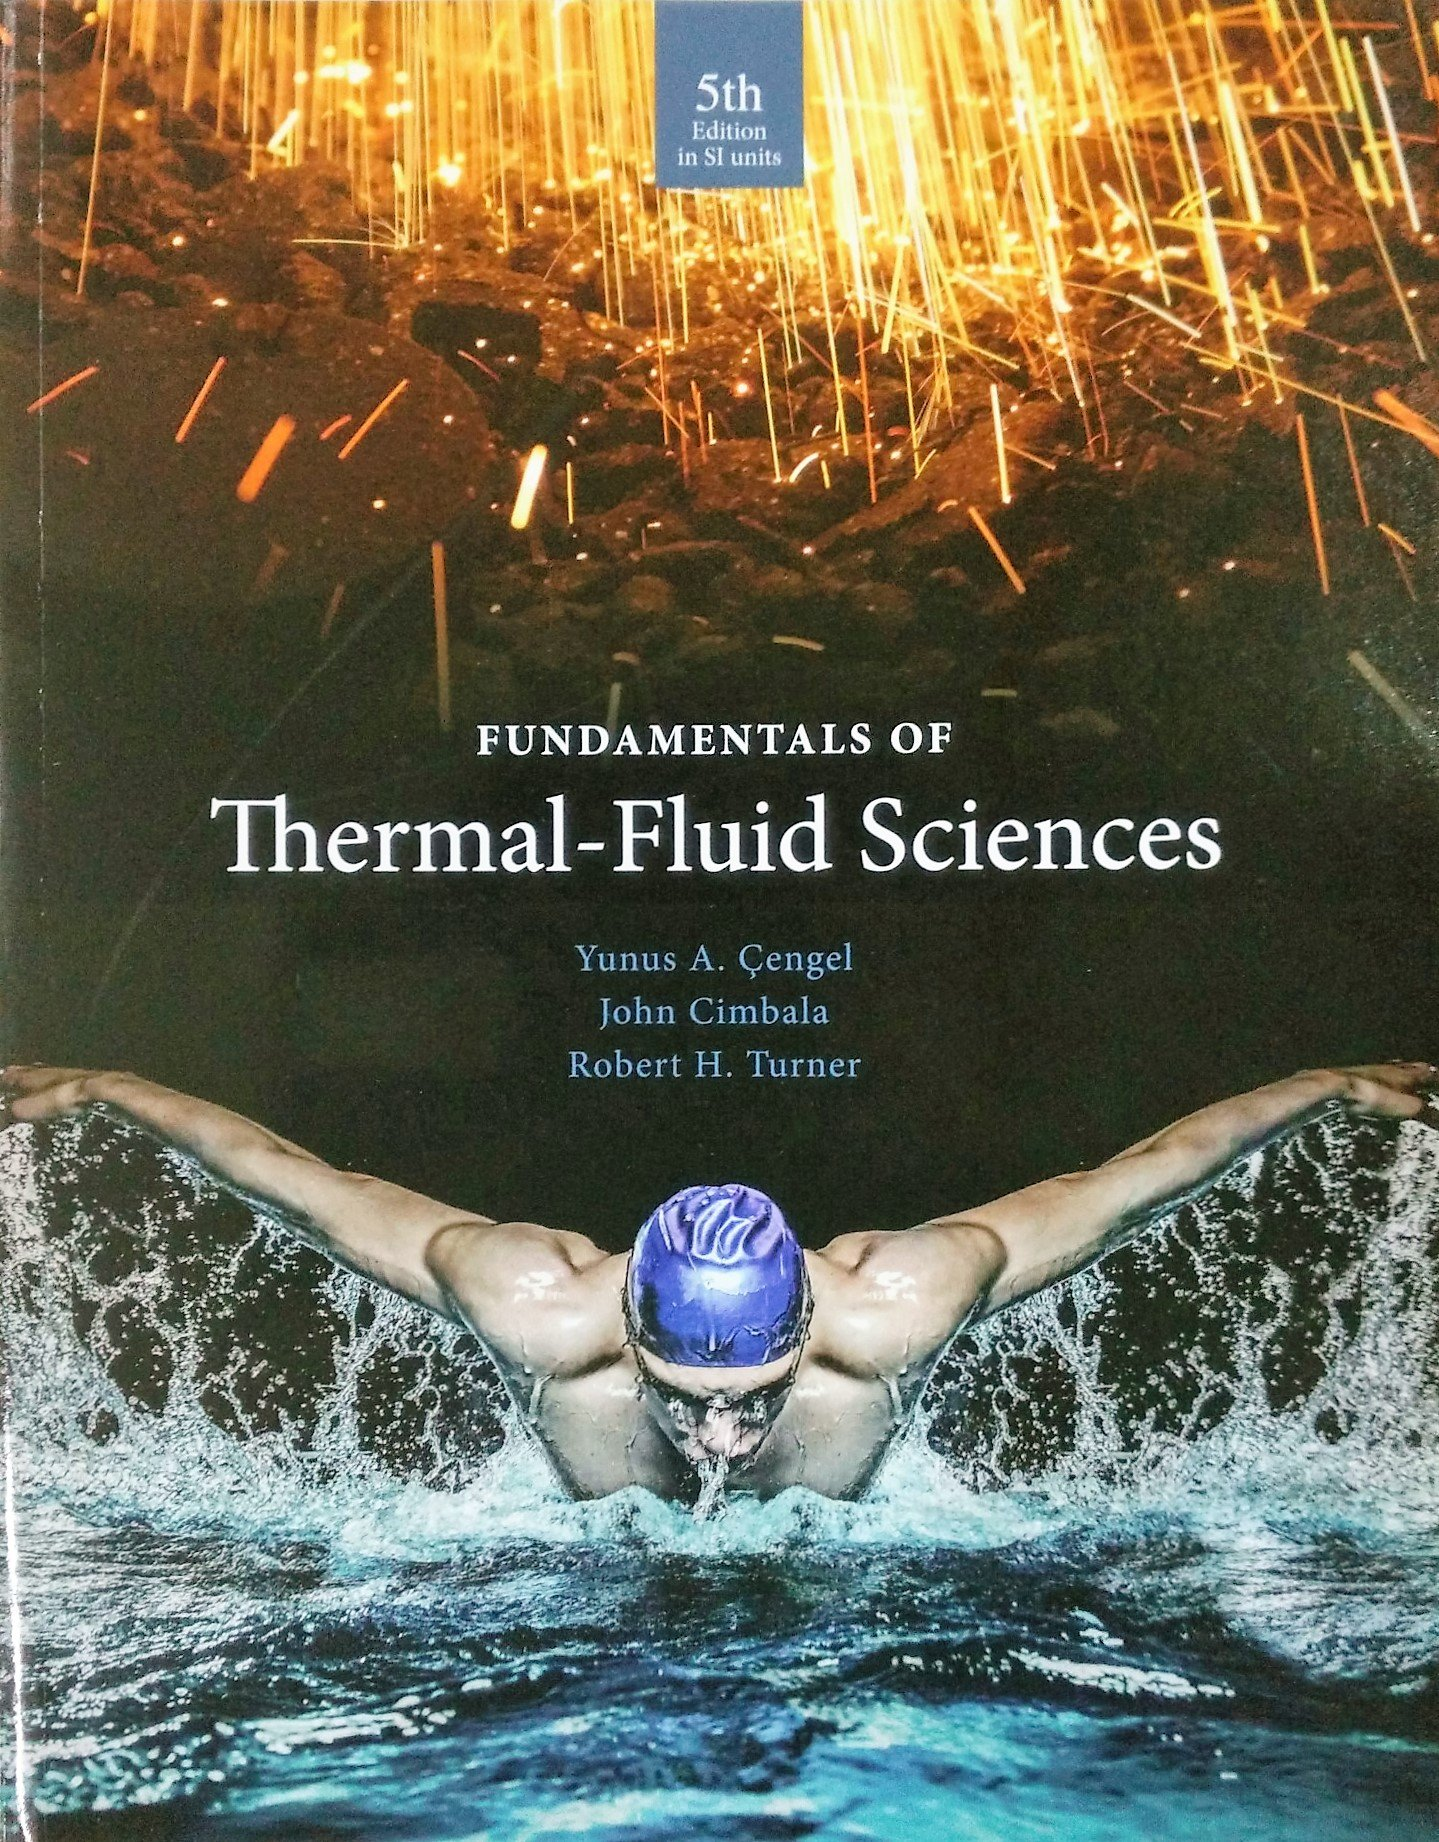 Fundamentals of thermal fluid sciences amazon yunus cengel fundamentals of thermal fluid sciences amazon yunus cengel robert turner john cimbala 9789814720953 books fandeluxe Choice Image